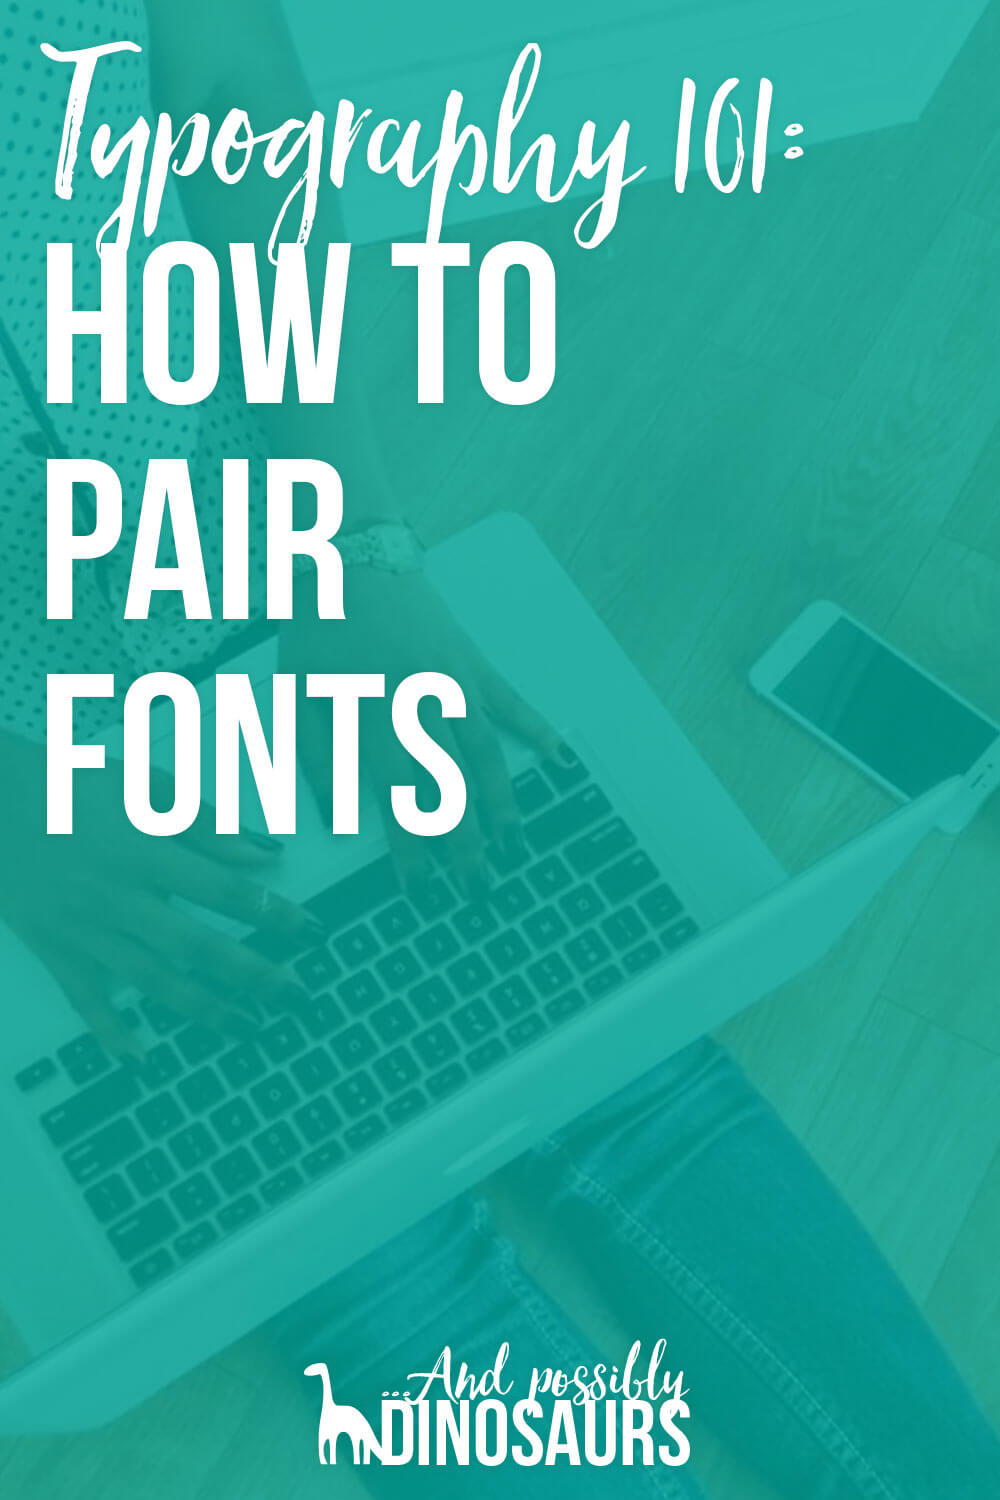 Choosing fonts is one of the hardest parts of design, but it doesn't have to be intimidating! Click through for a basic overview of fonts, font types, and what to look for when choosing fonts for your brand!